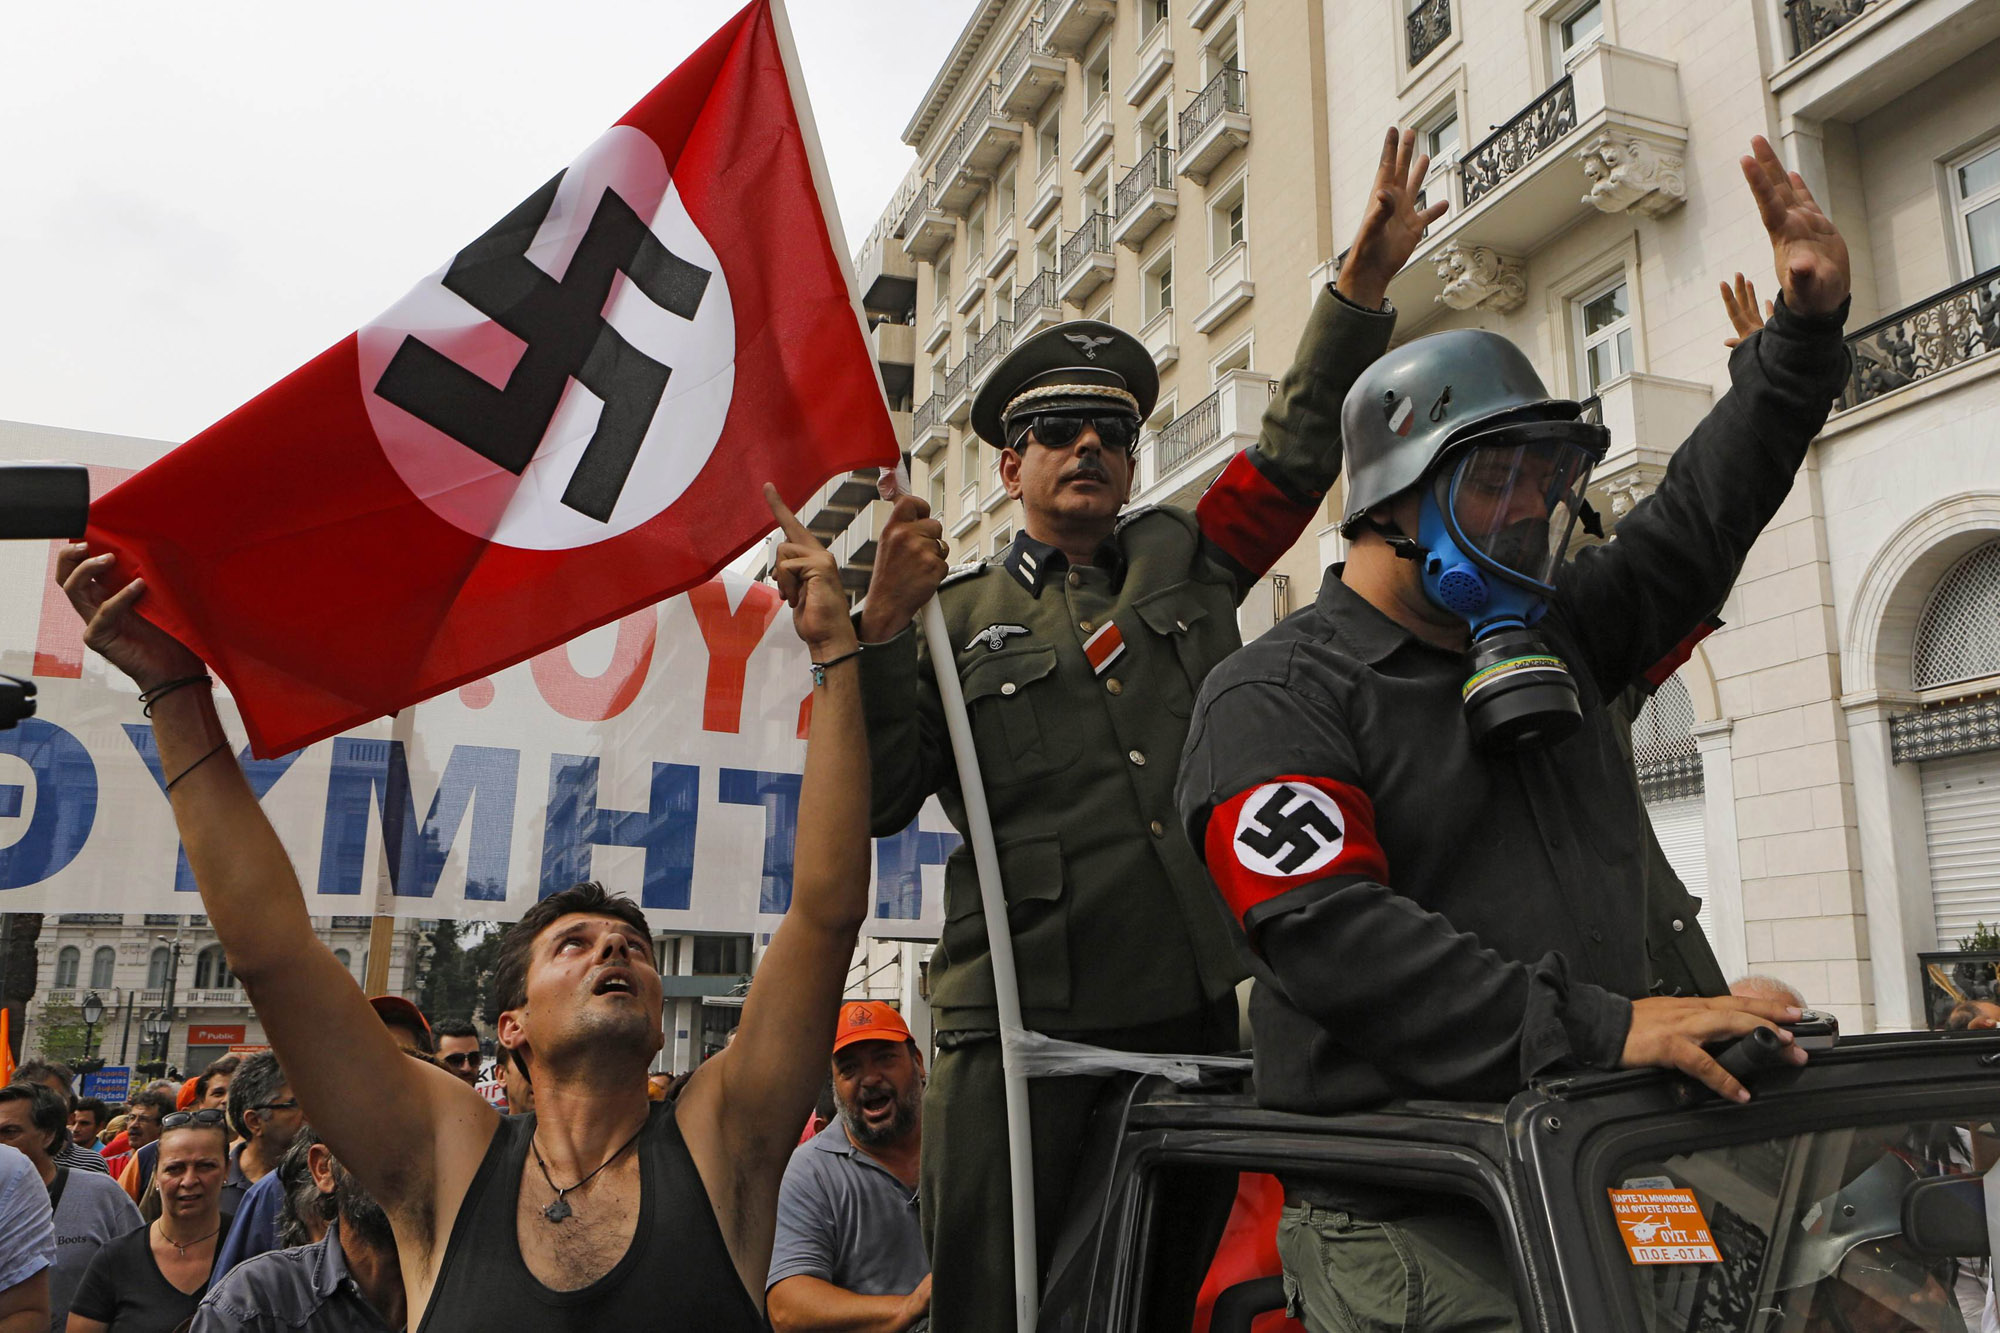 File picture shows demonstrators dressed as Nazis and waving a swastika flag as they ride in an open-top car in Syntagma Square in Athens as they protest against the visit of Germany's Chancellor Angela Merkel